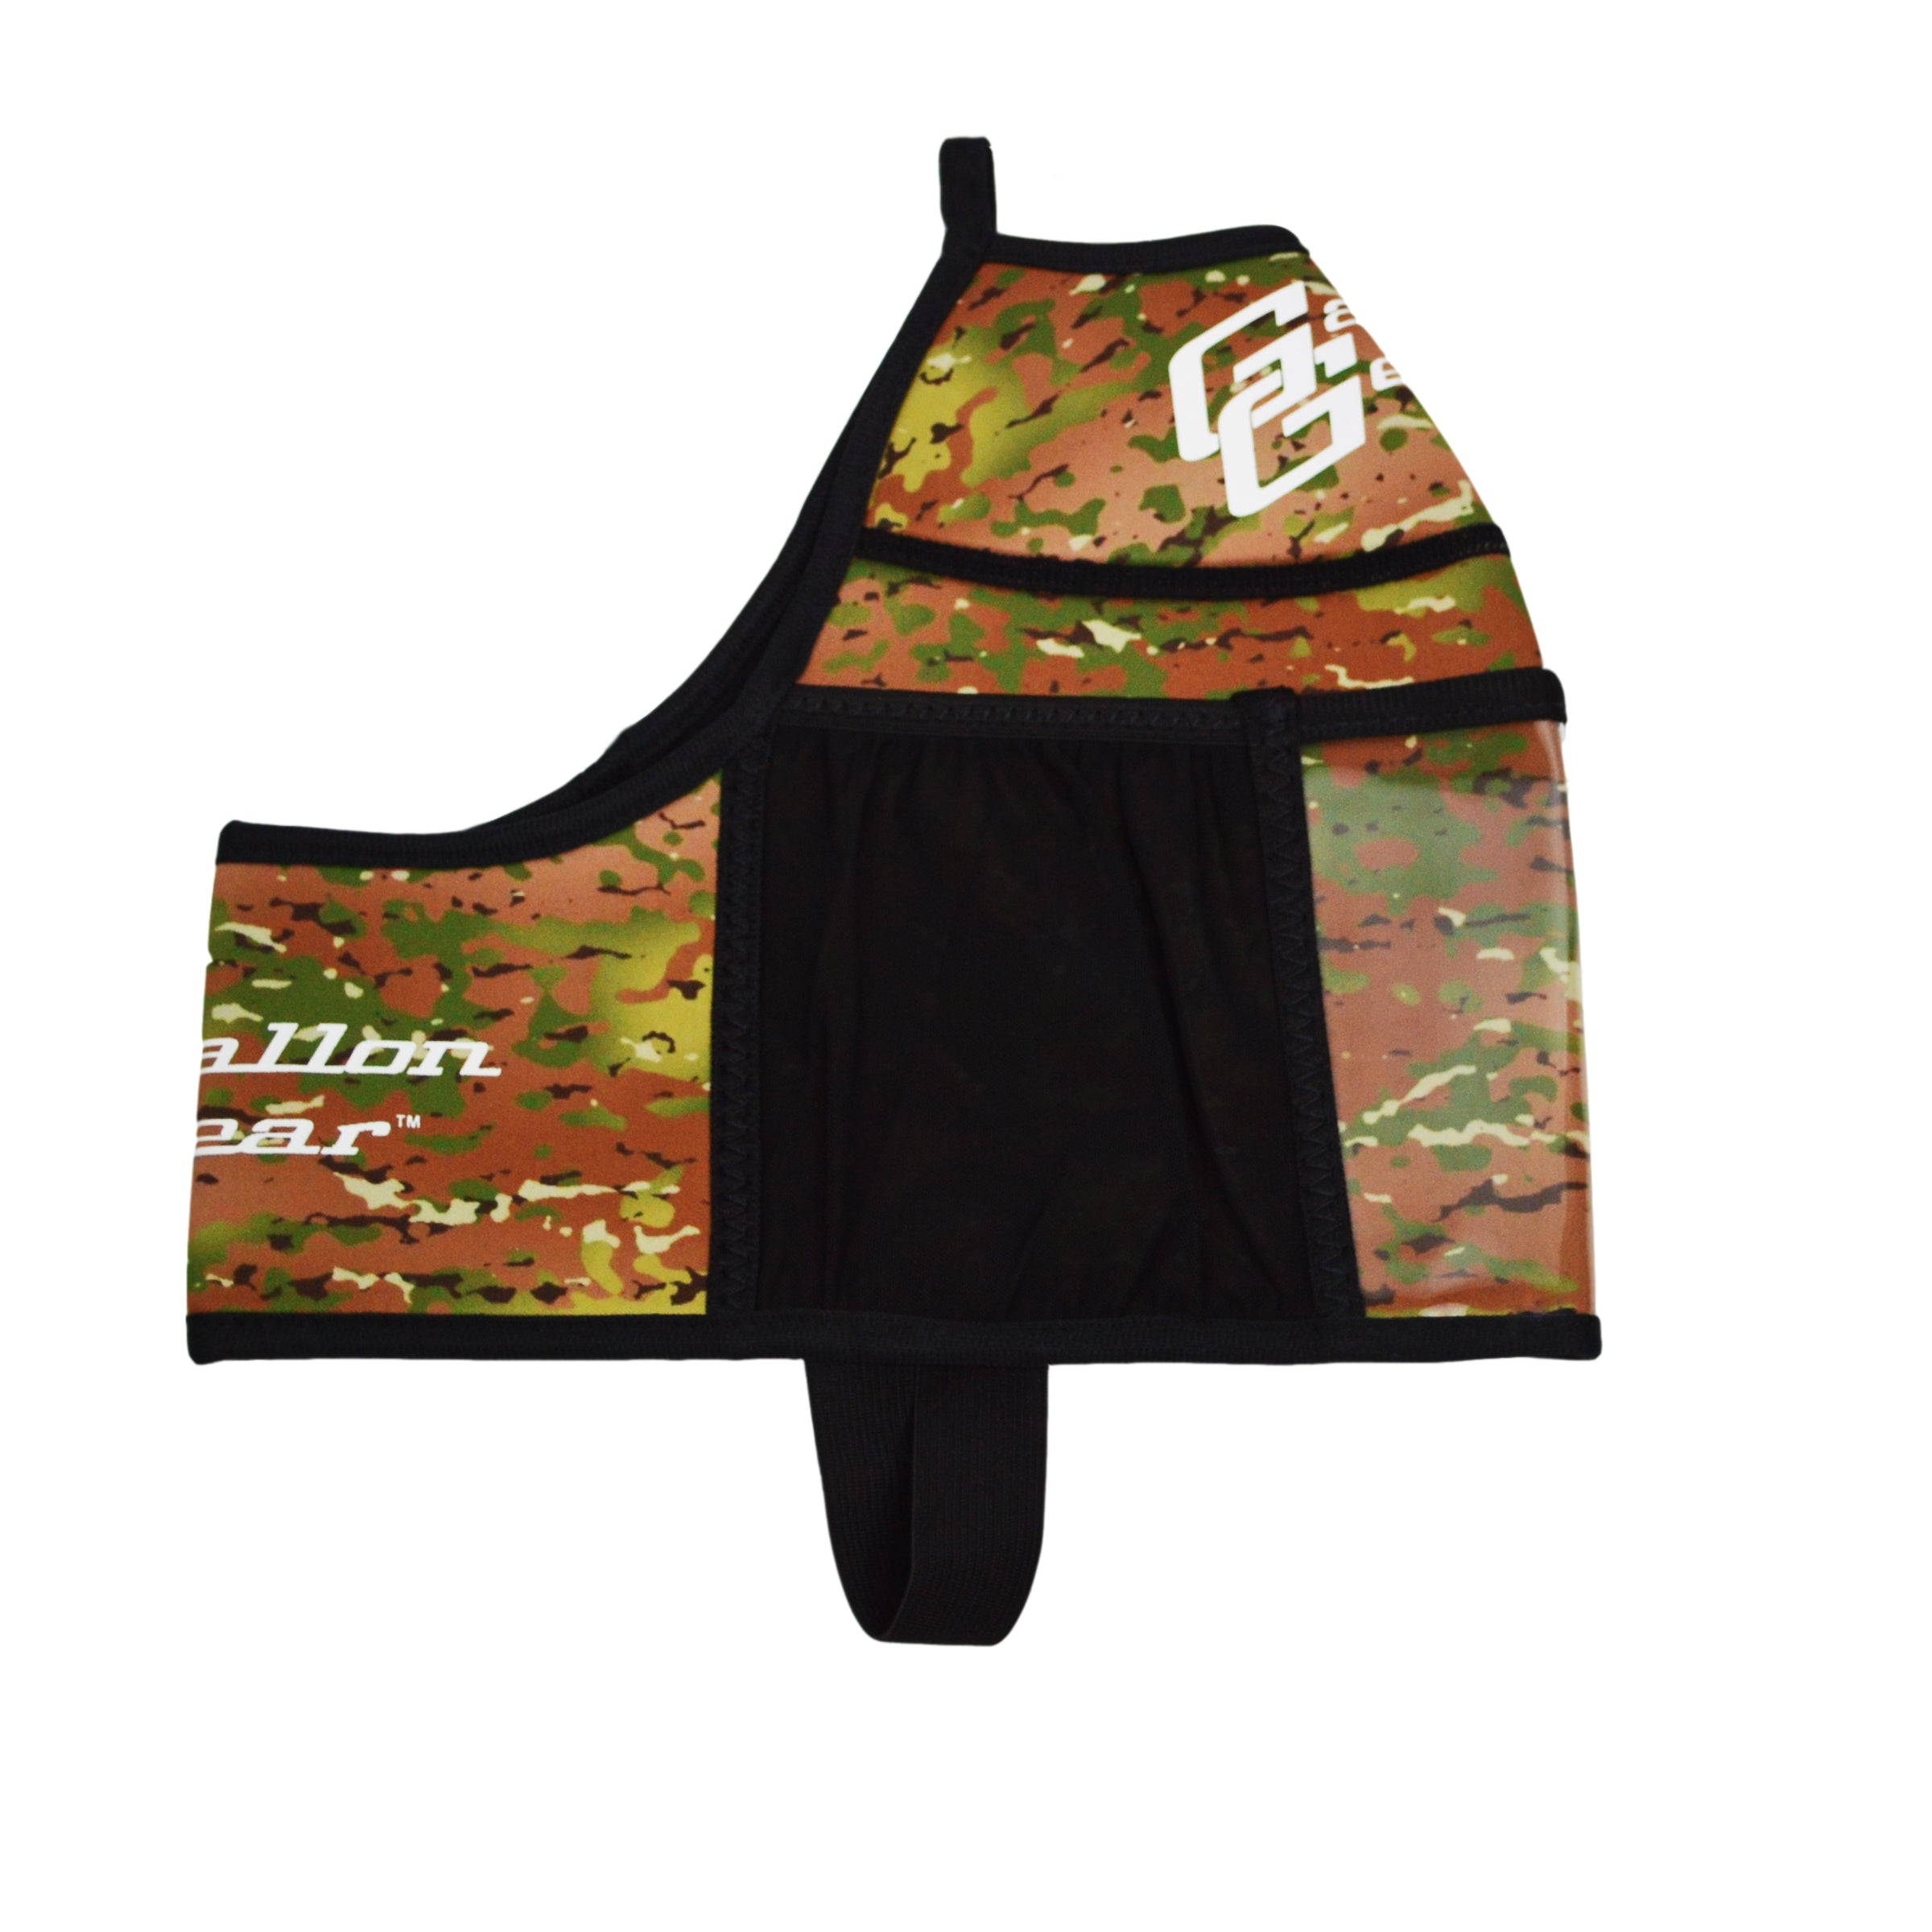 Multicam Gallon Gear Fitness Hydration Cover